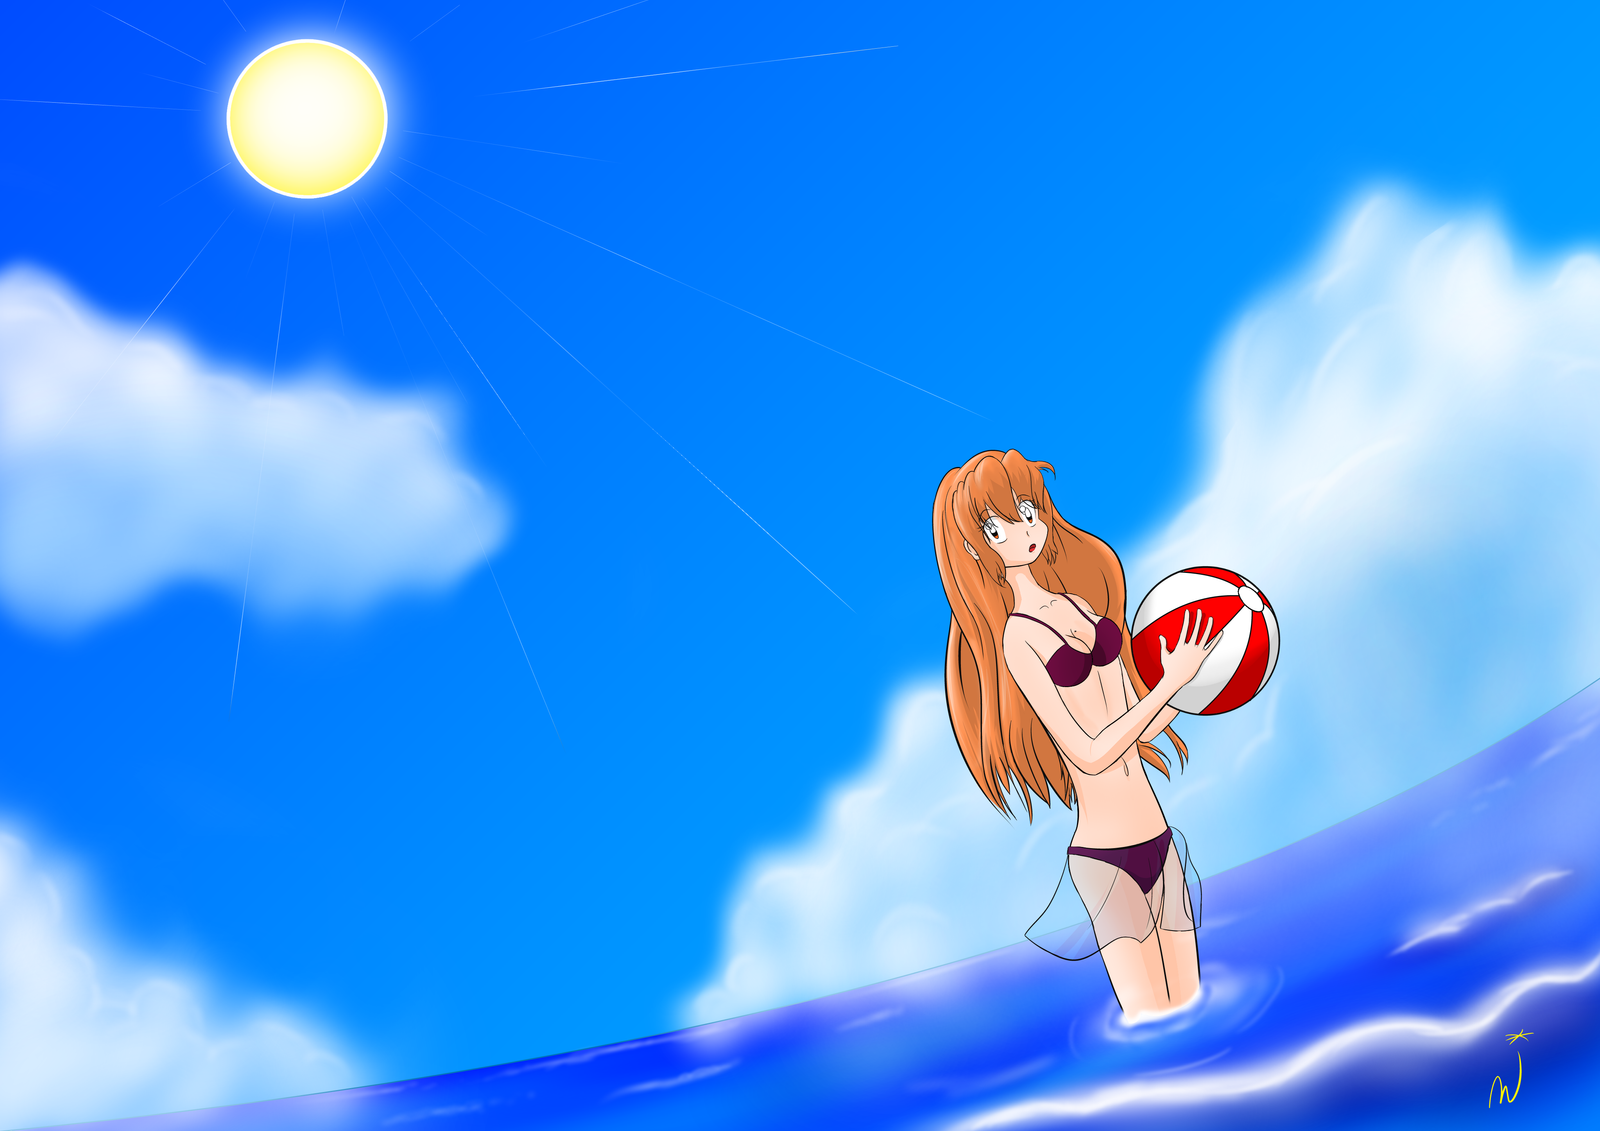 Mikuru On the Beach by Dumdodoor